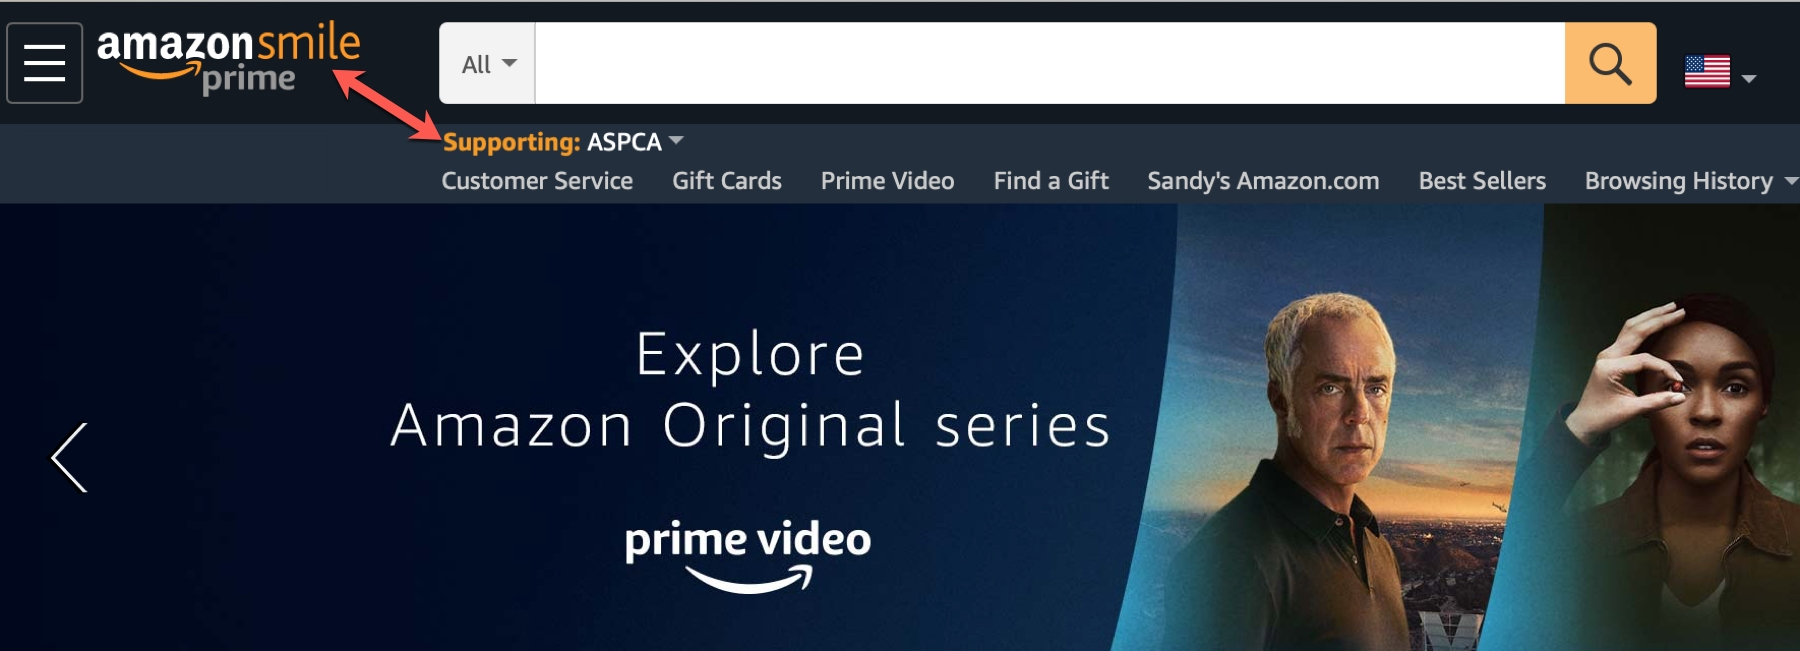 Amazon Smile Supported Charity